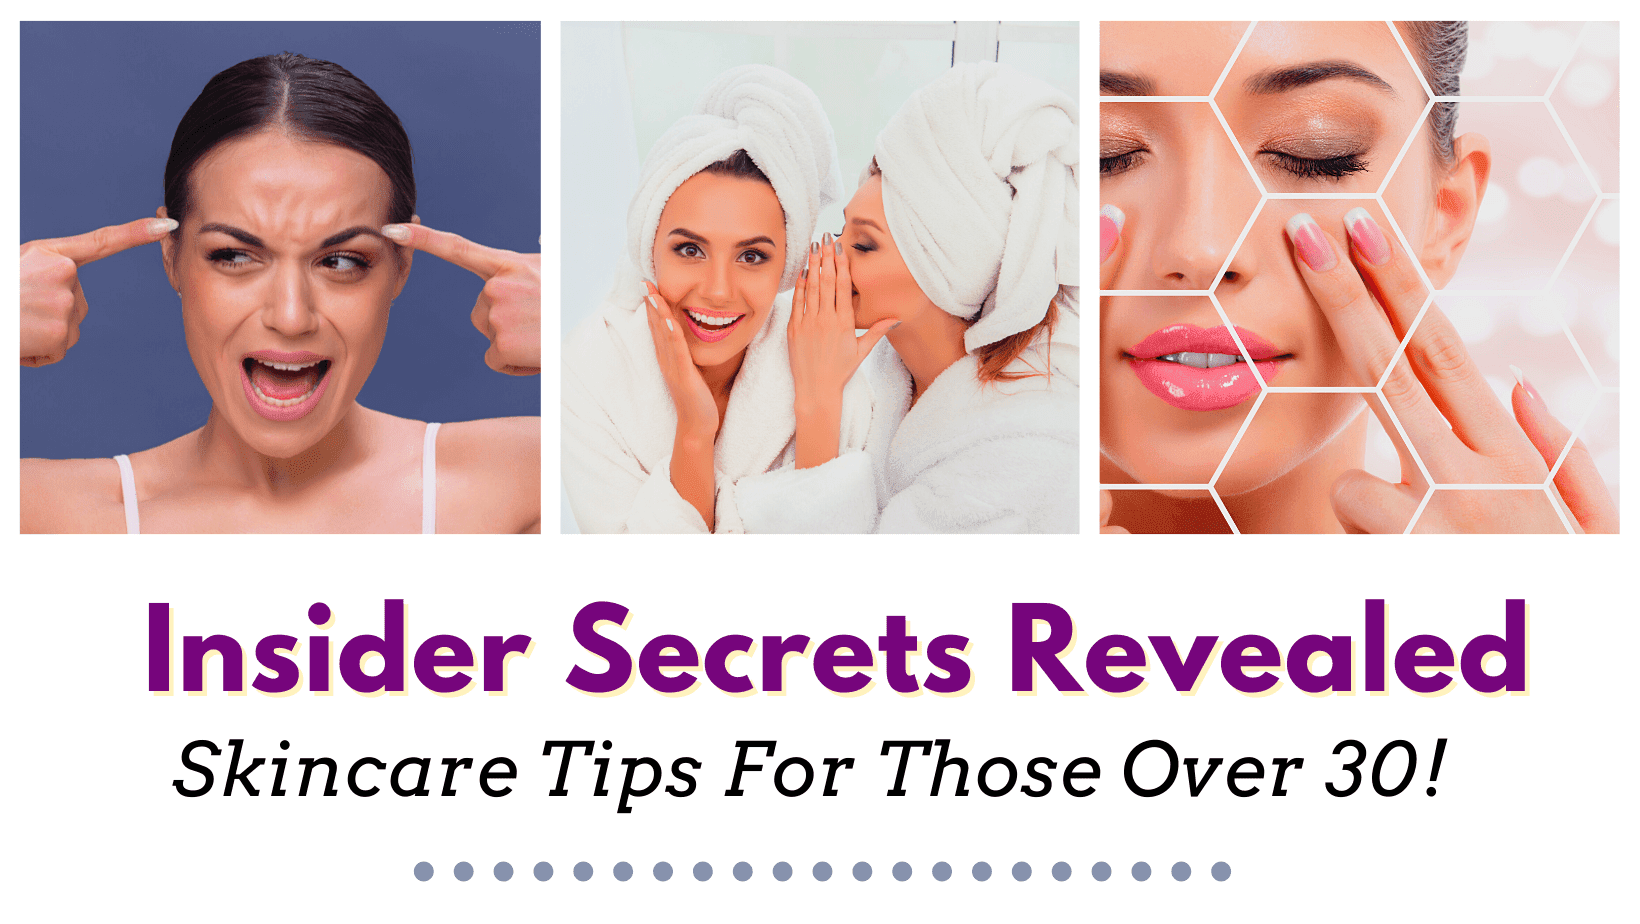 10 Insider Skincare Tips For Those Over 30 By Barbies Beauty Bits